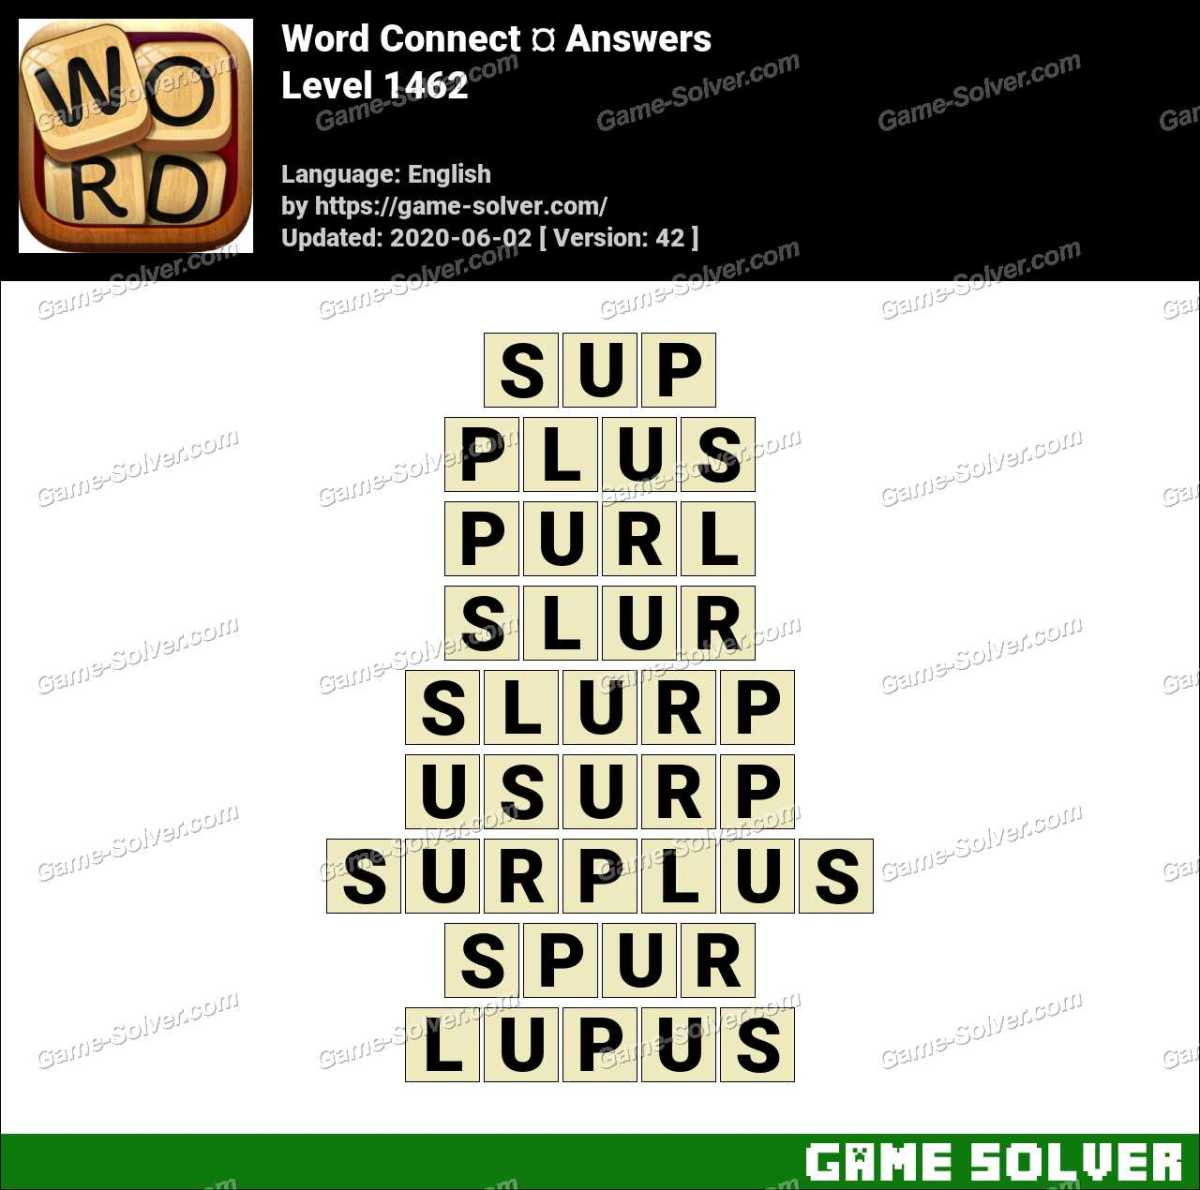 Word Connect Level 1462 Answers